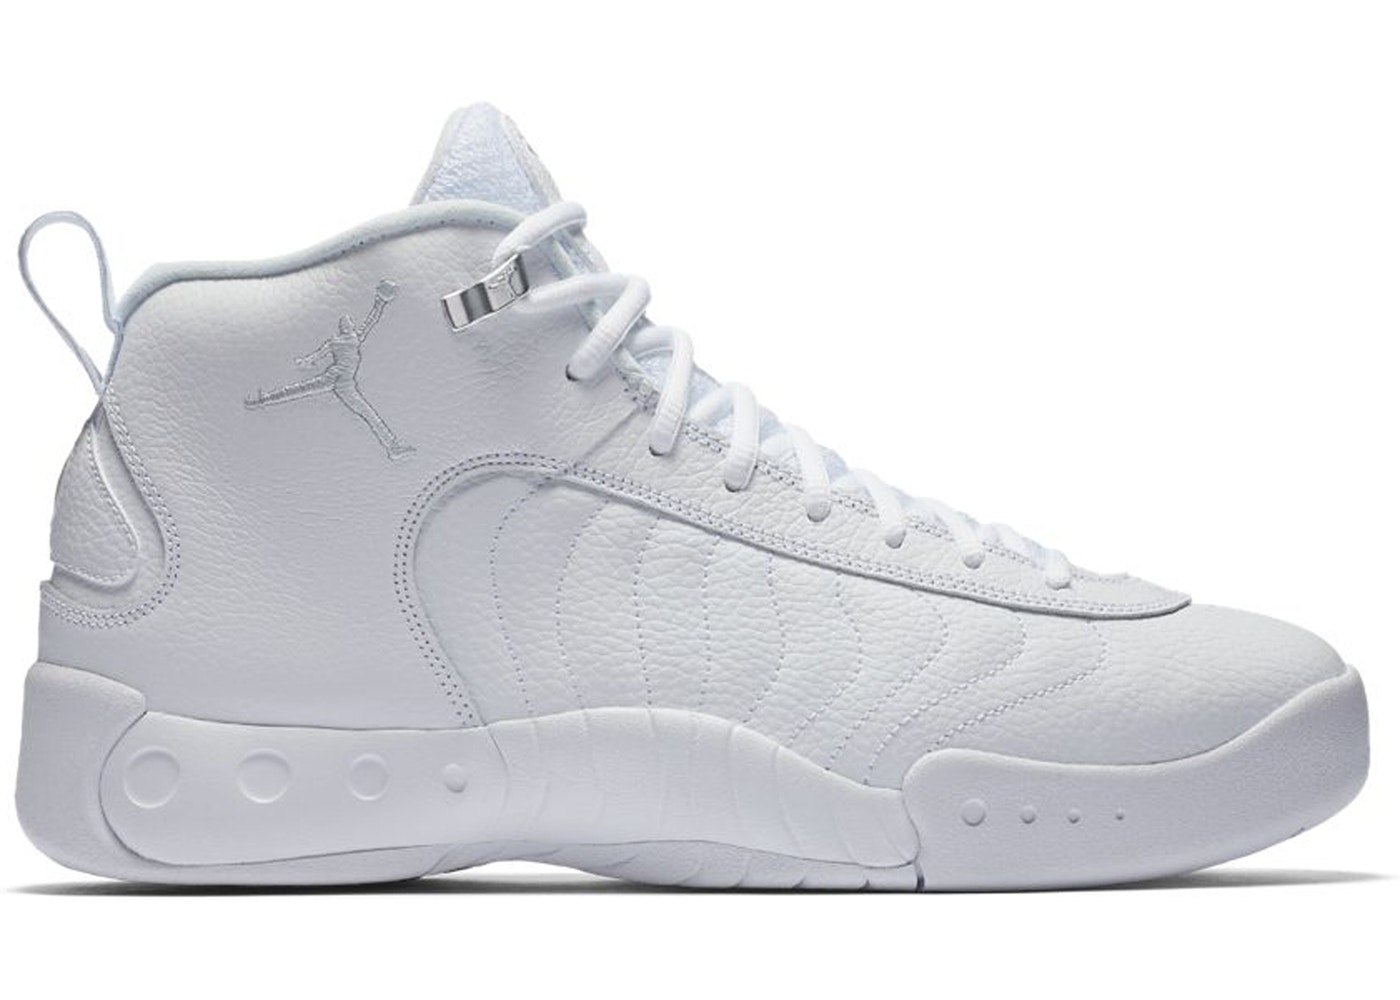 on sale c11cf 733ea Jordan Jumpman Pro White Pure Platinum - 906876-100